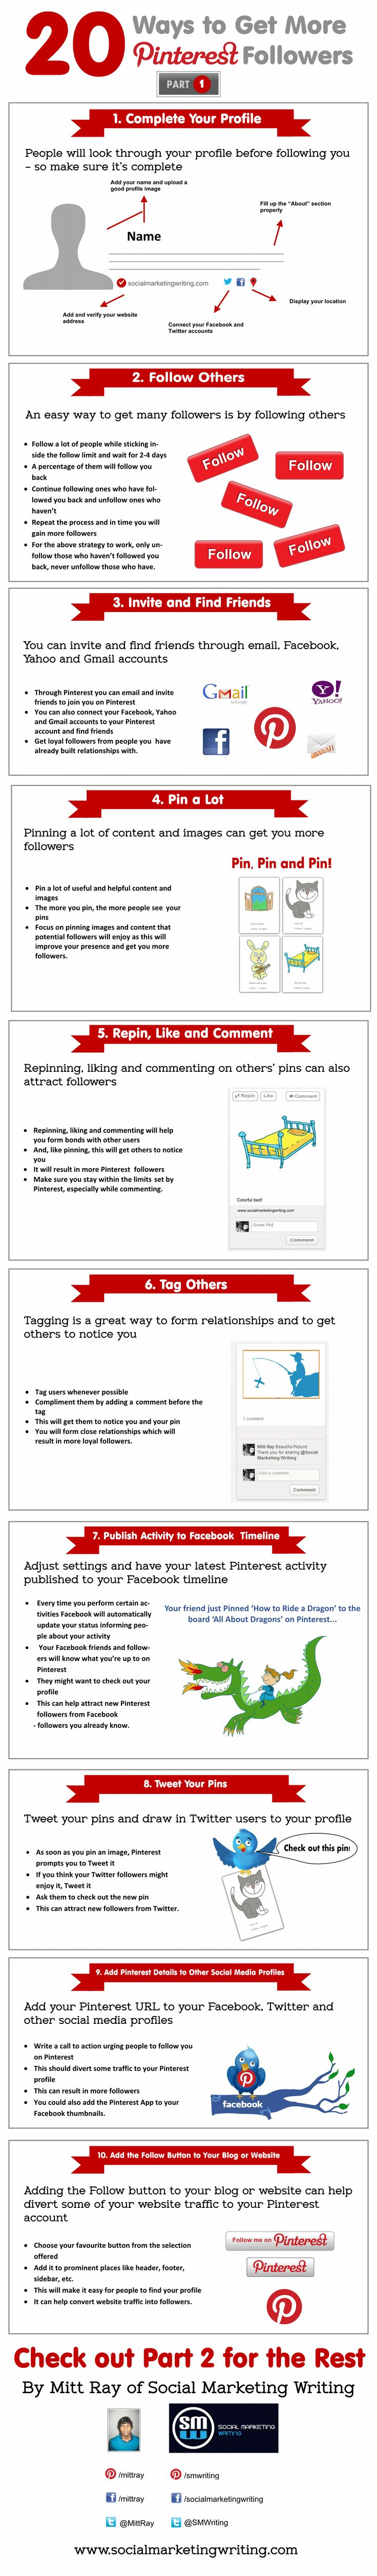 http://socialmarketingwriting.com/20-ways-to-get-more-pinterest-followers-part-1-infographic/